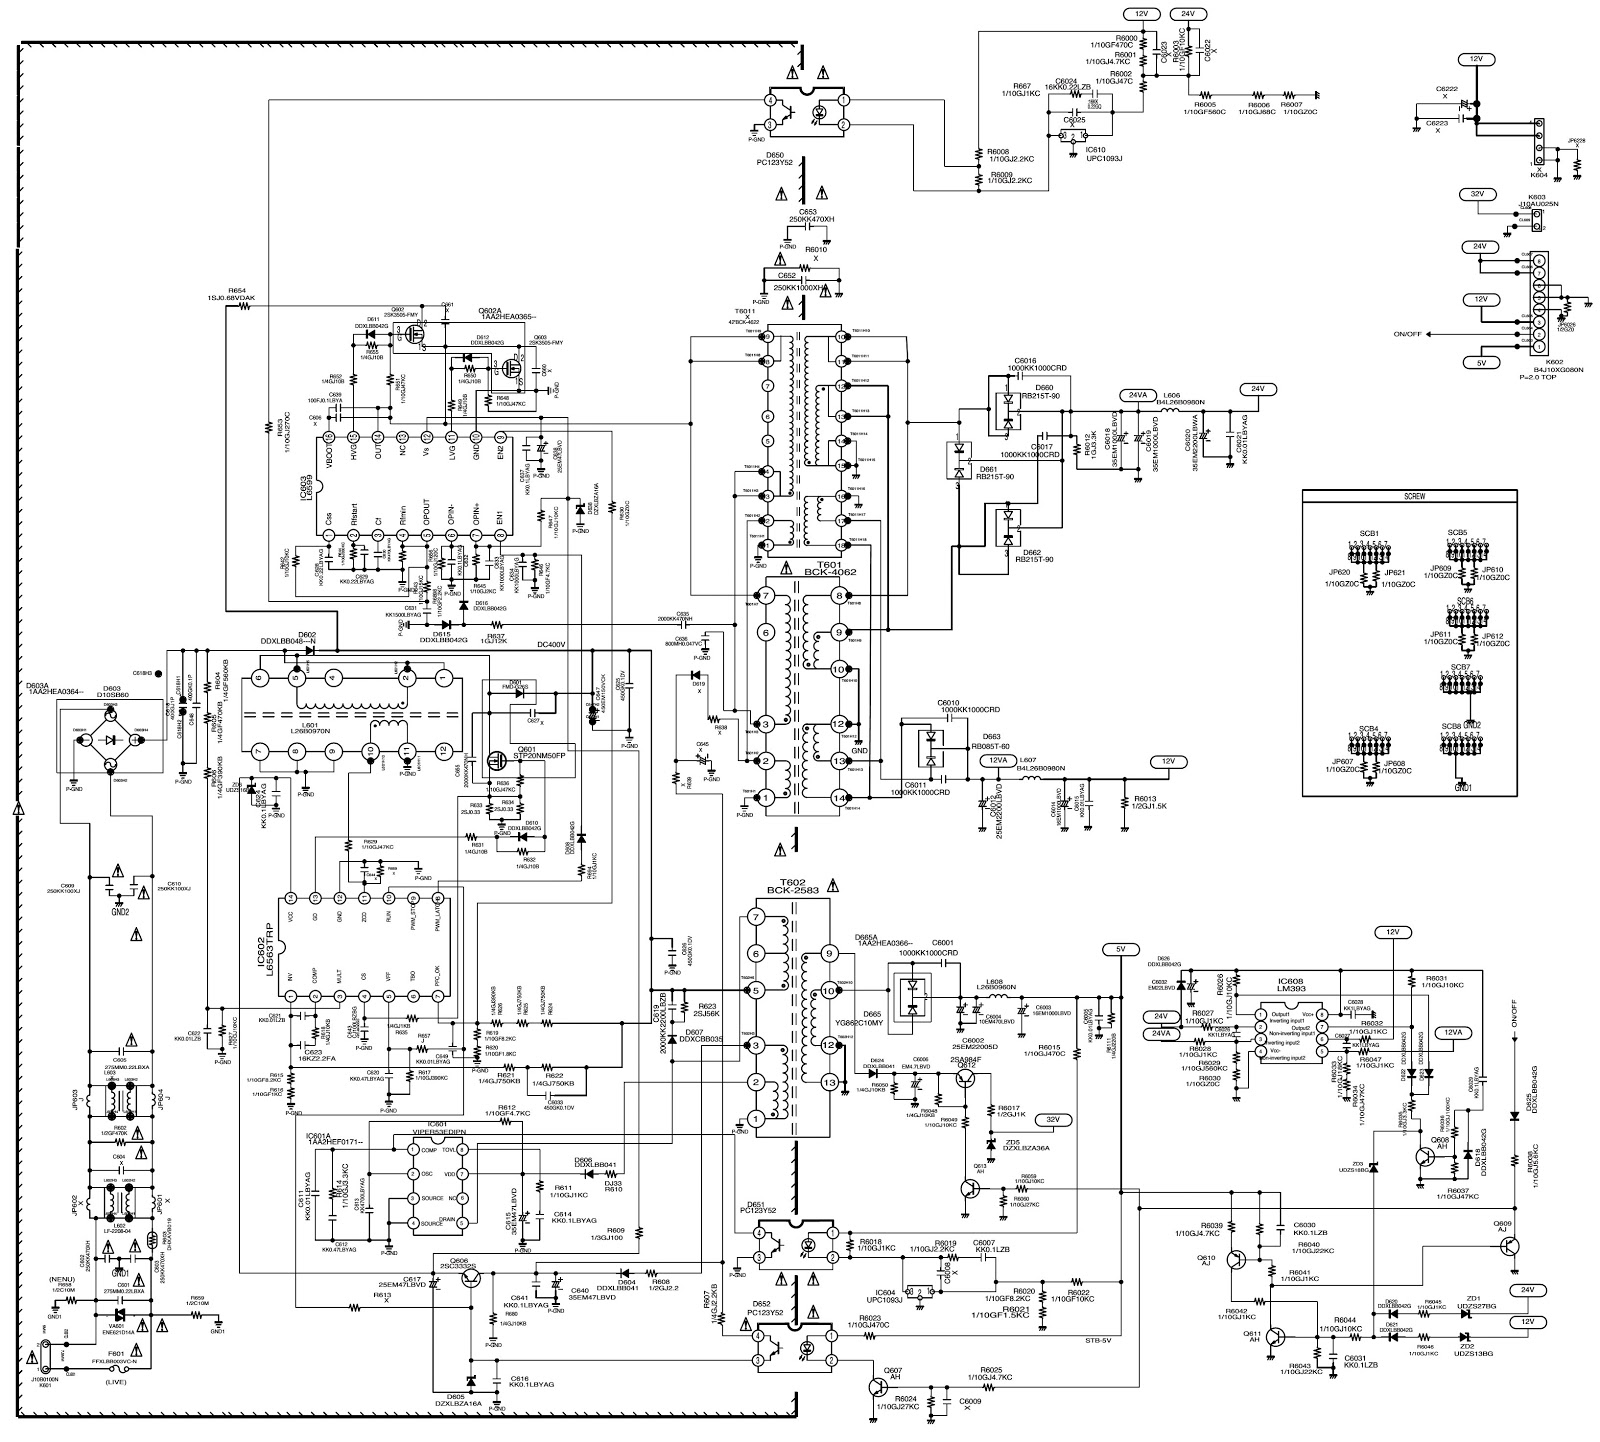 Sanyo Tv Schematic Diagram Starting Know About Wiring Harness Color Code Service Modes And Smps Back Light Inverter Schematics Rh Schematicscom Blogspot Com Circuit